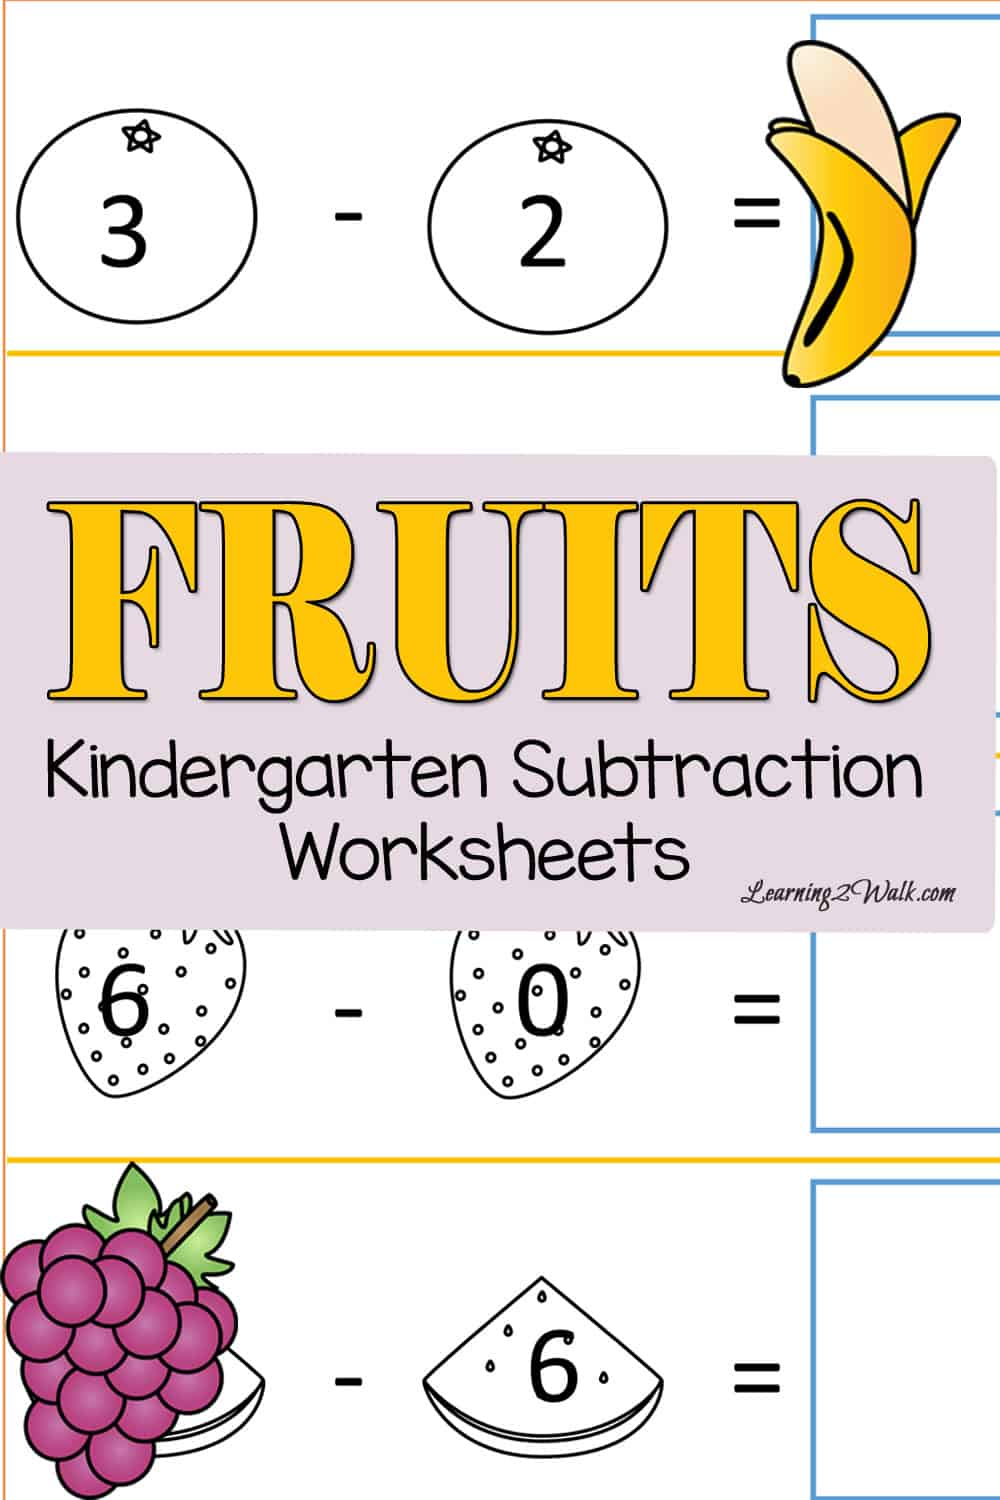 math worksheet : fruits cut and paste kindergarten subtraction worksheets : Cut And Paste Worksheets Kindergarten